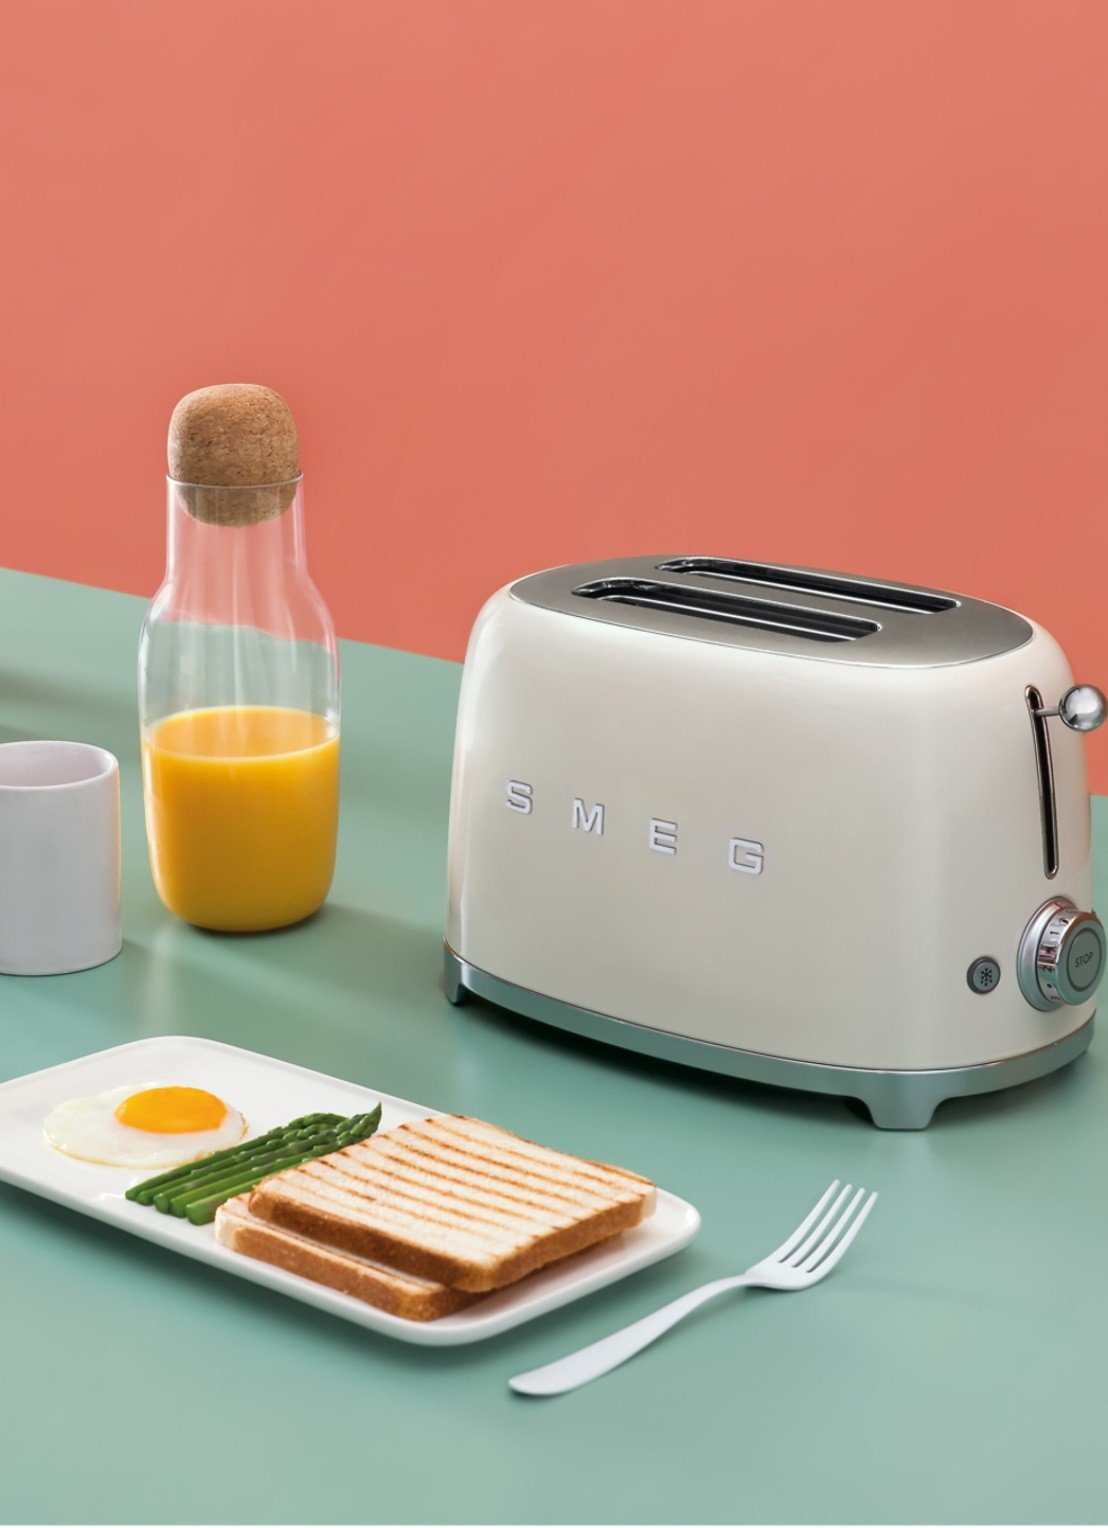 50's Style broodrooster SMEG